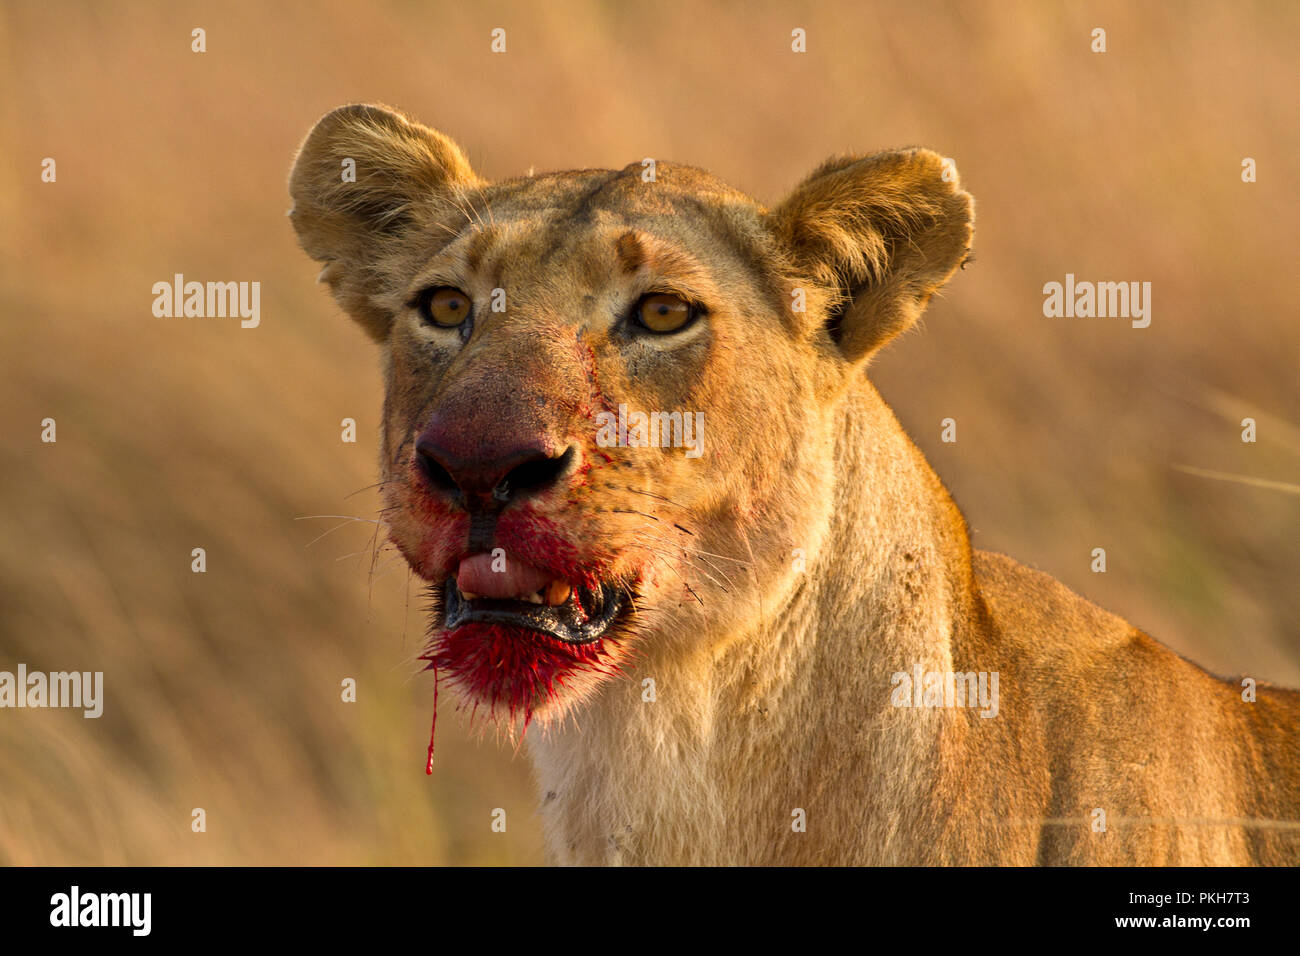 A lioness takes a break from eating a recently killed buffalo - Stock Image